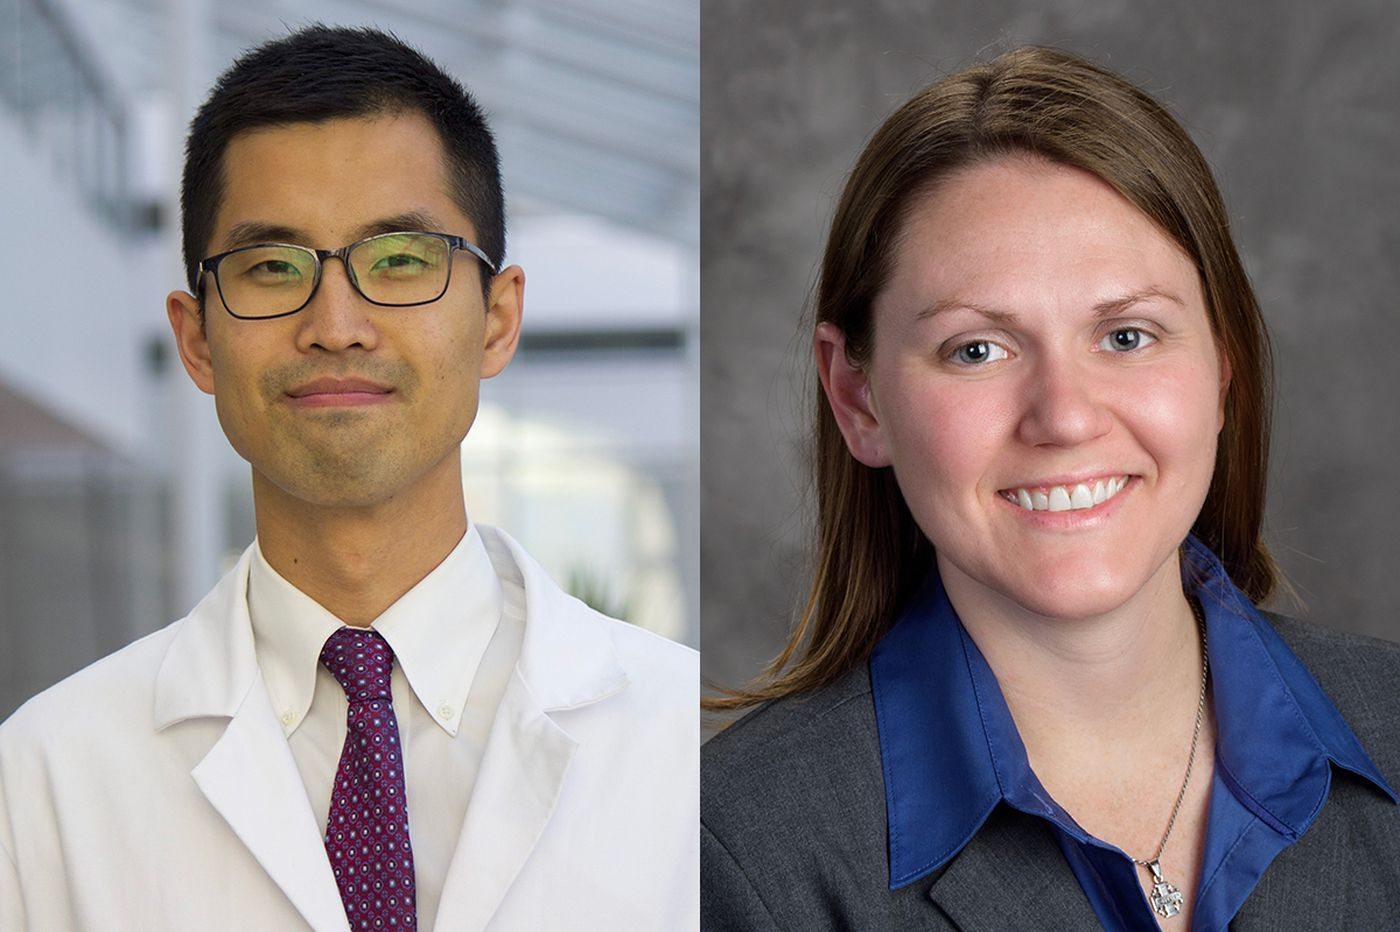 For these Penn doctors, gunshot wounds are never routine, and should be preventable